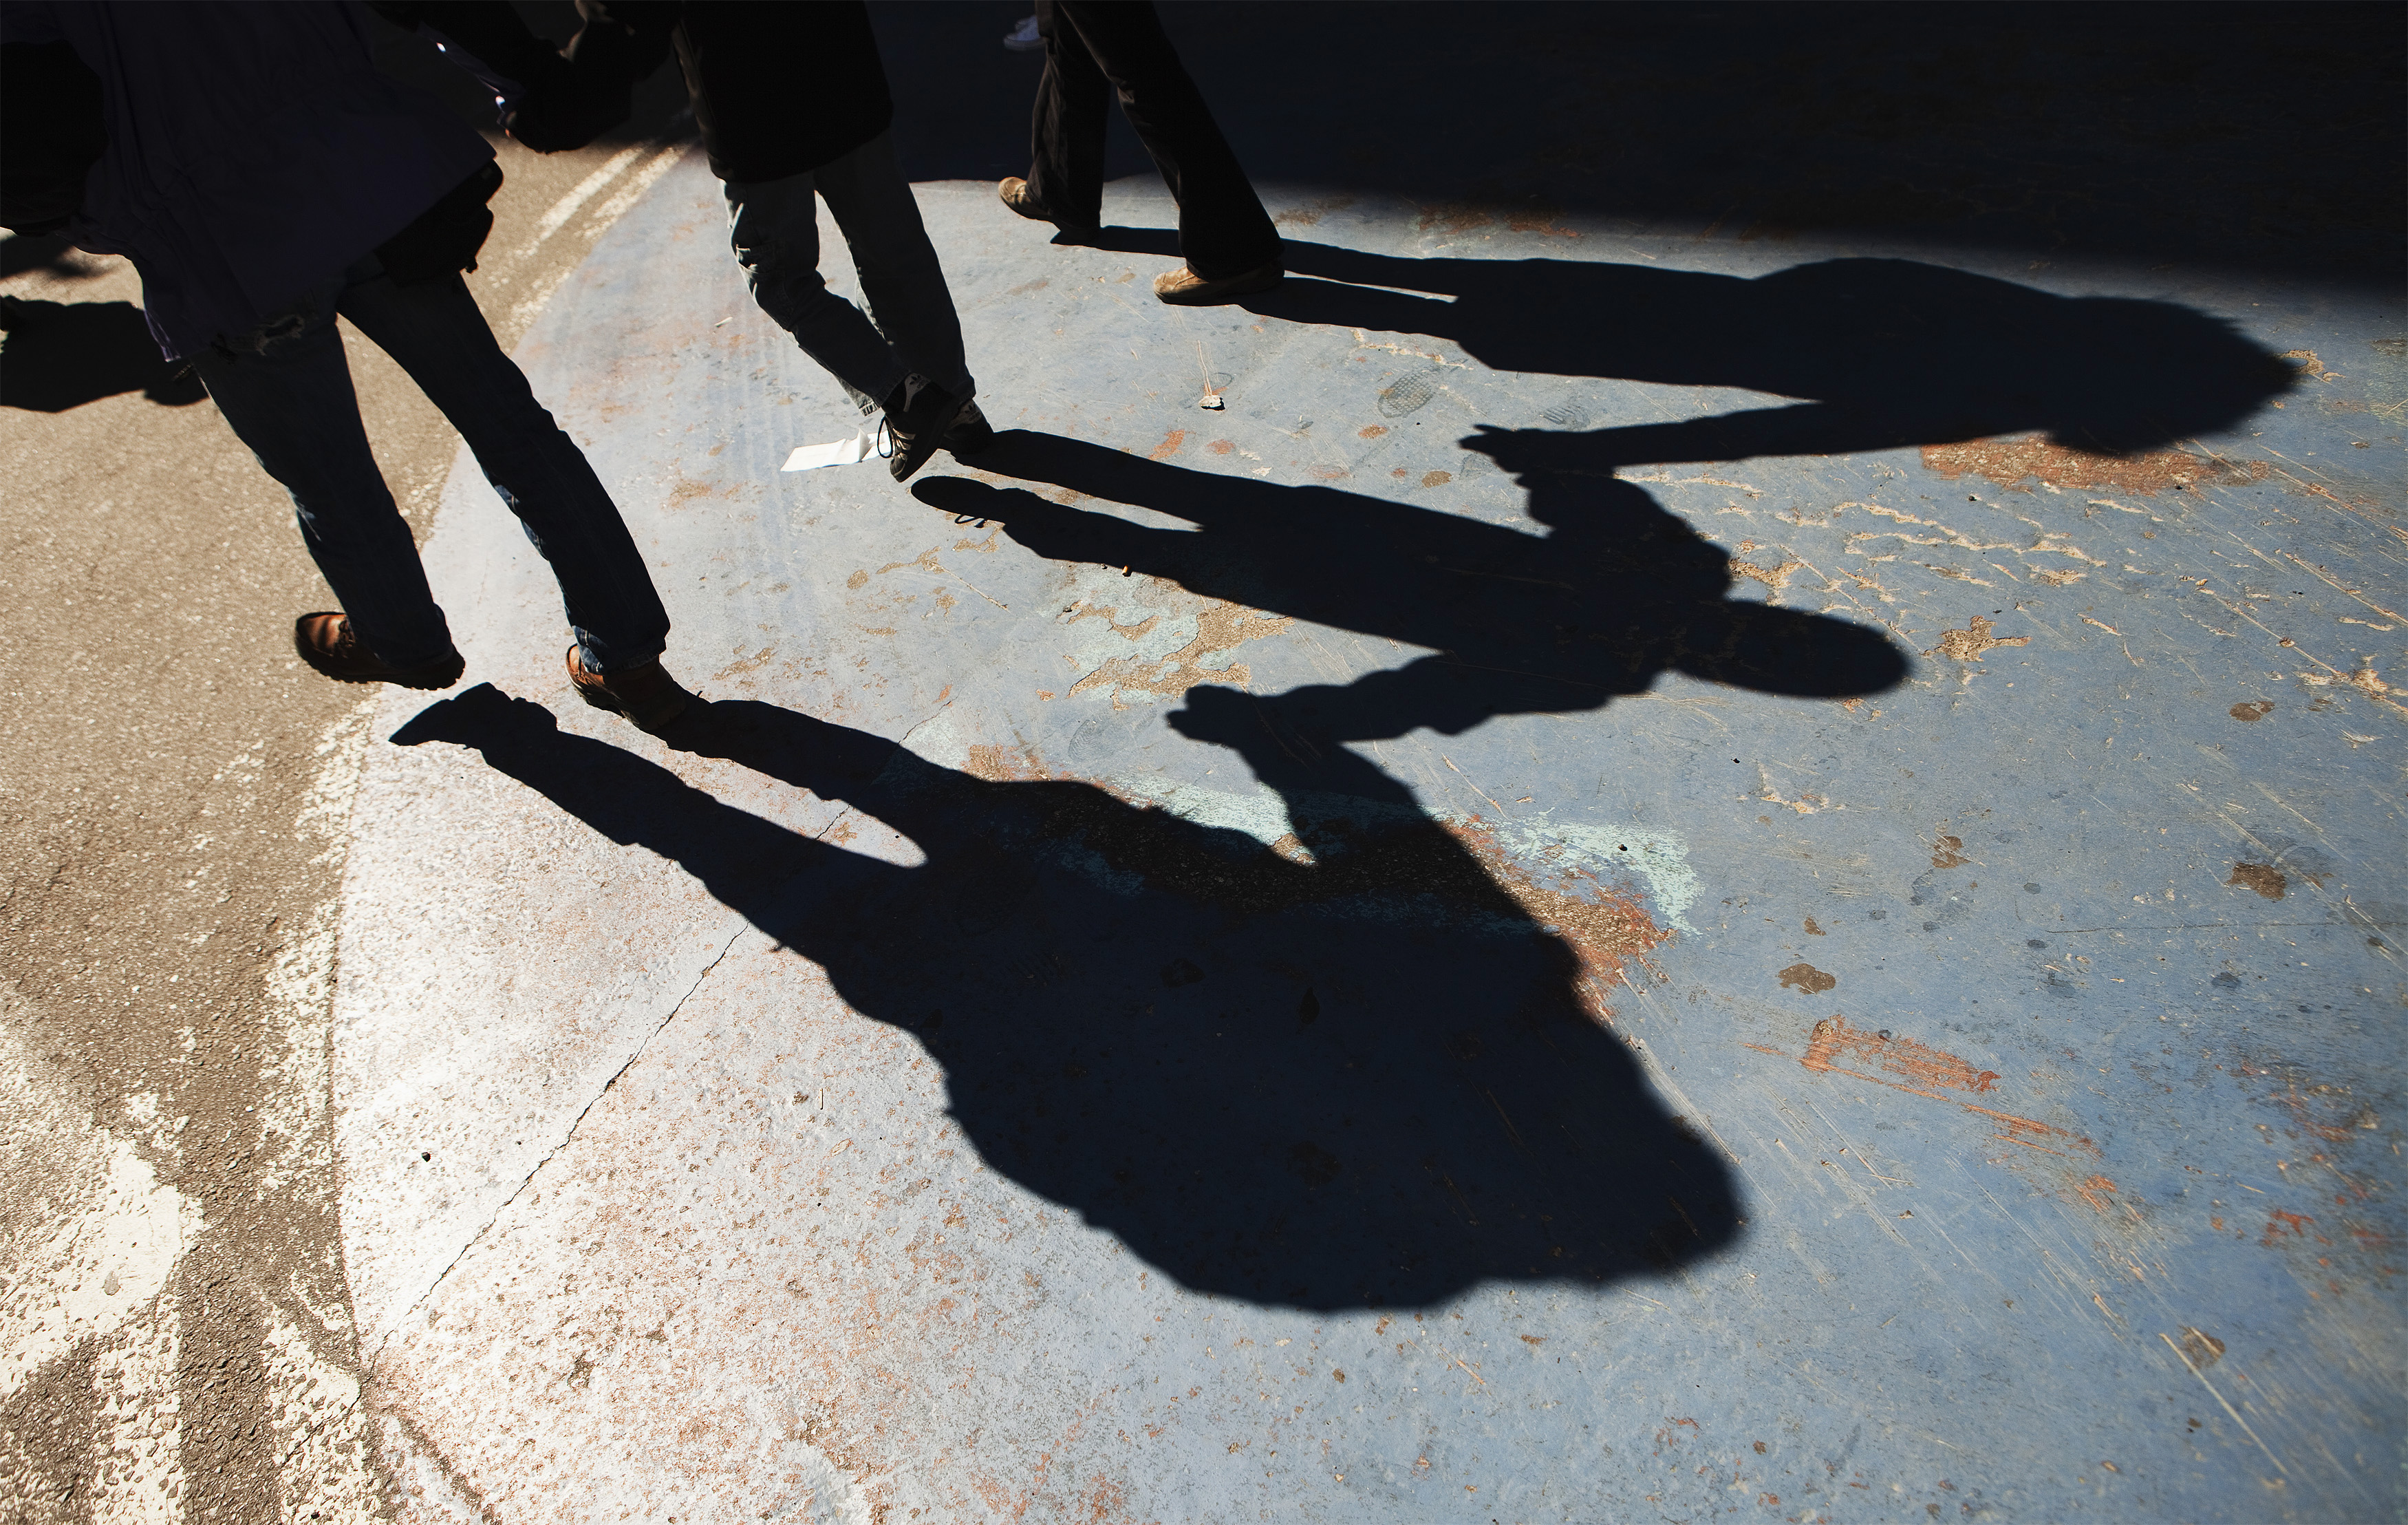 A family hold hands as they walk through Times Square during a warm winter day in New York March 6, 2012. REUTERS/Lucas Jackson (UNITED STATES - Tags: ENVIRONMENT SOCIETY) - GM1E8370EKC01